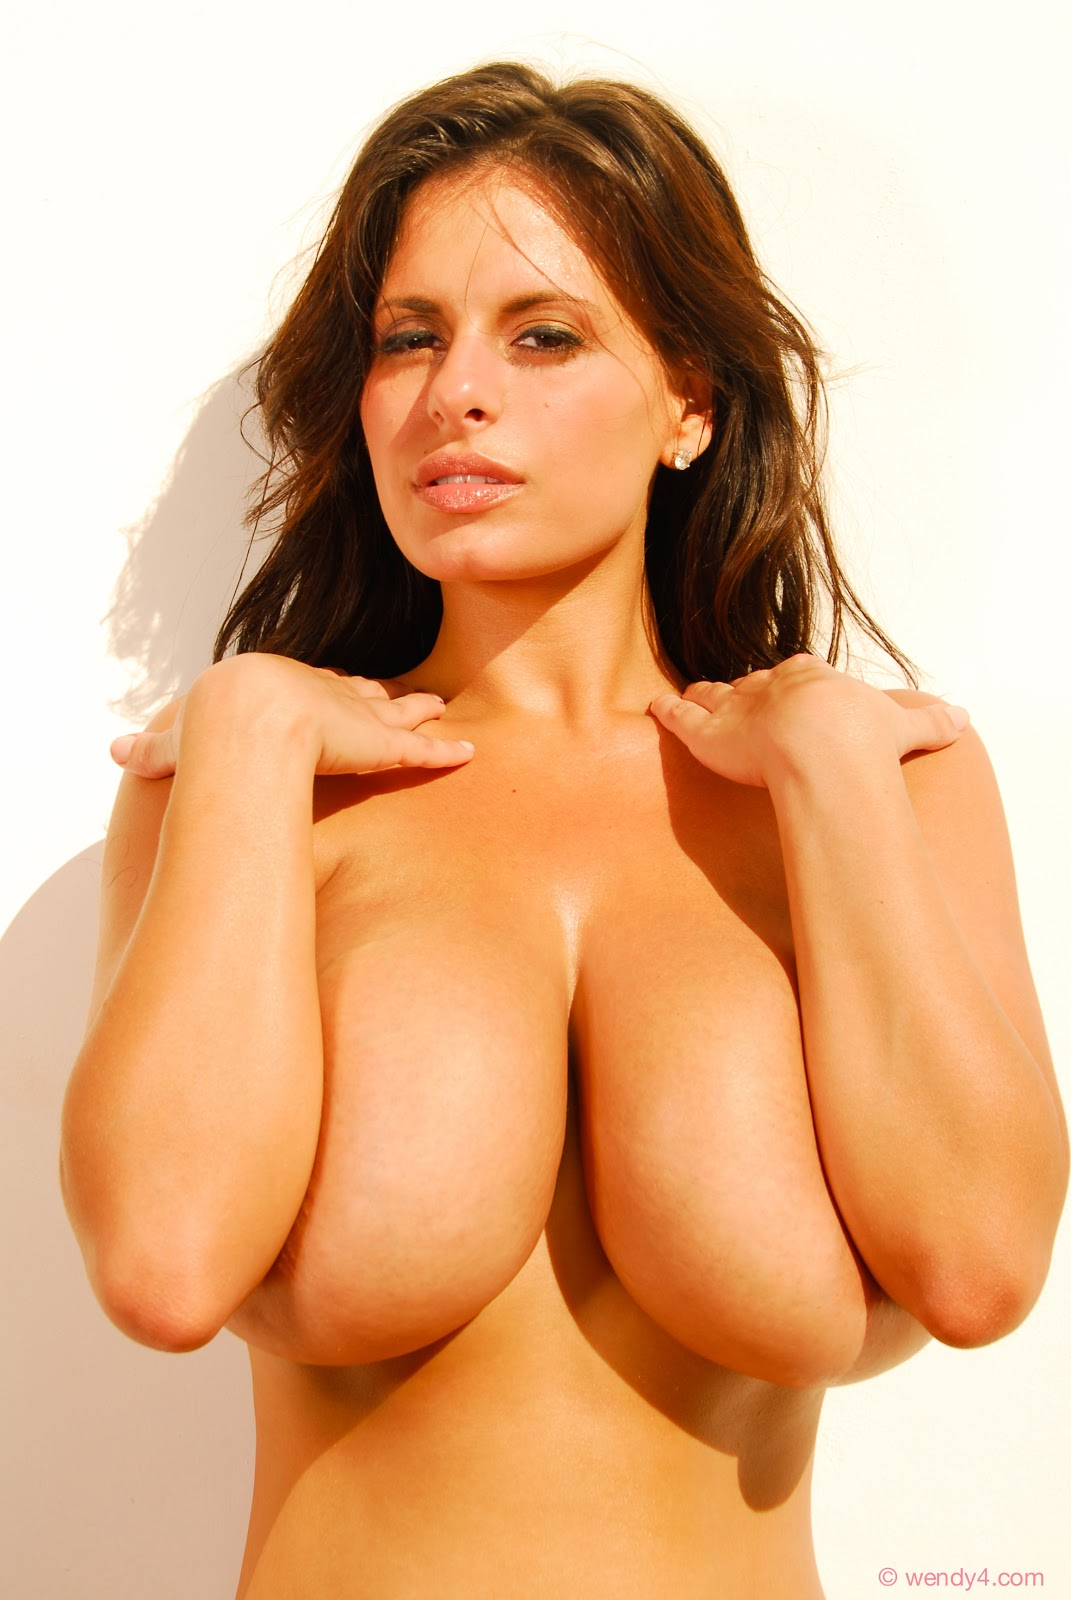 image Candids busty girl huge tits tight gray top